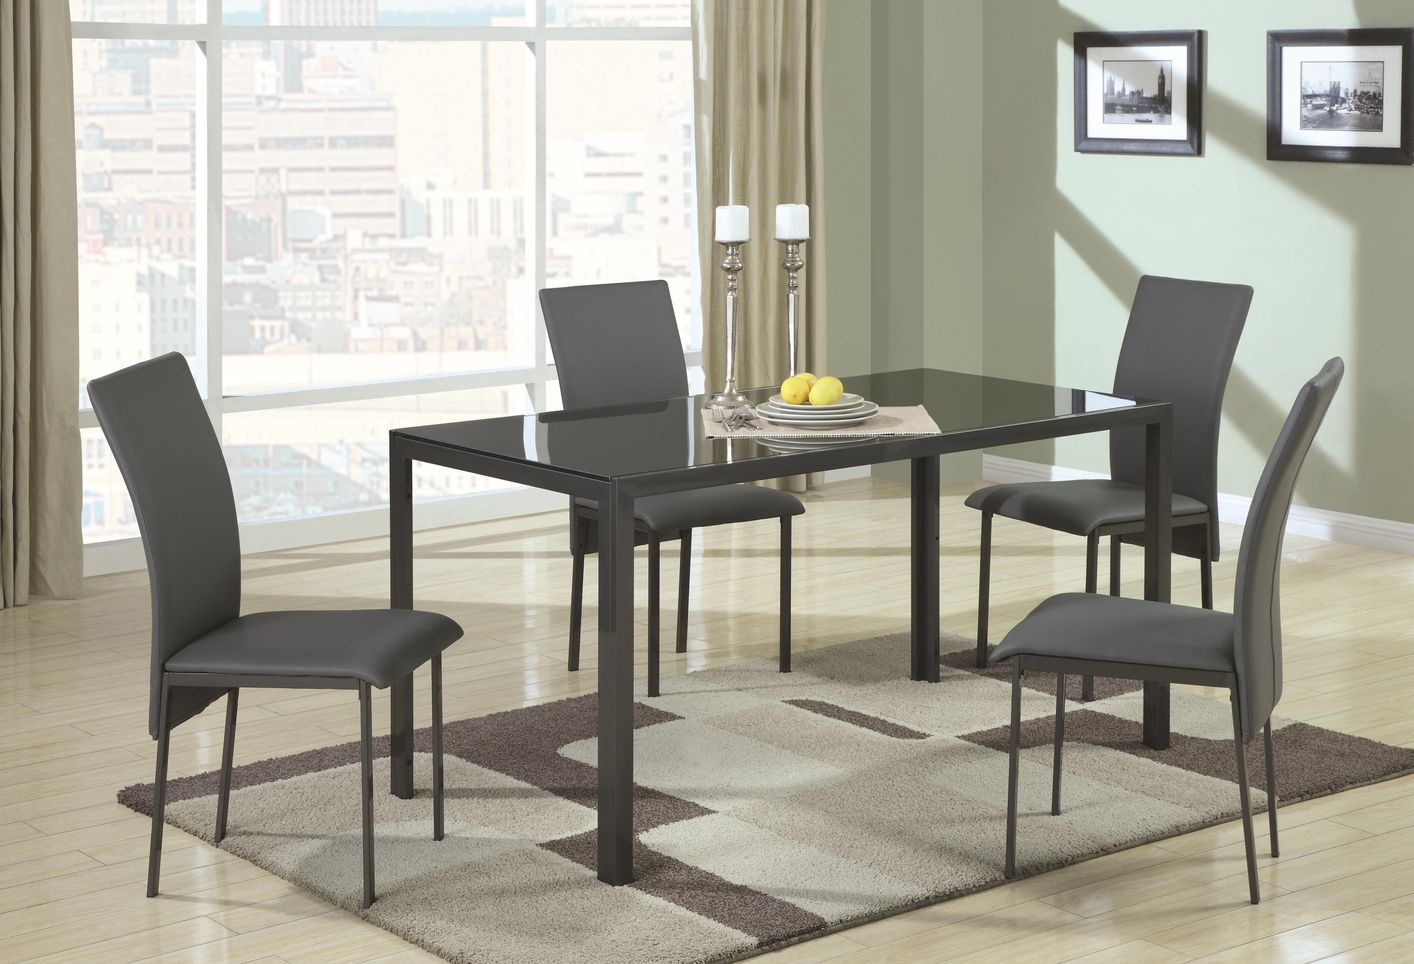 Shelby Black Metal And Glass Dining Table Set & Shelby Black Metal And Glass Dining Table Set - Steal-A-Sofa ...